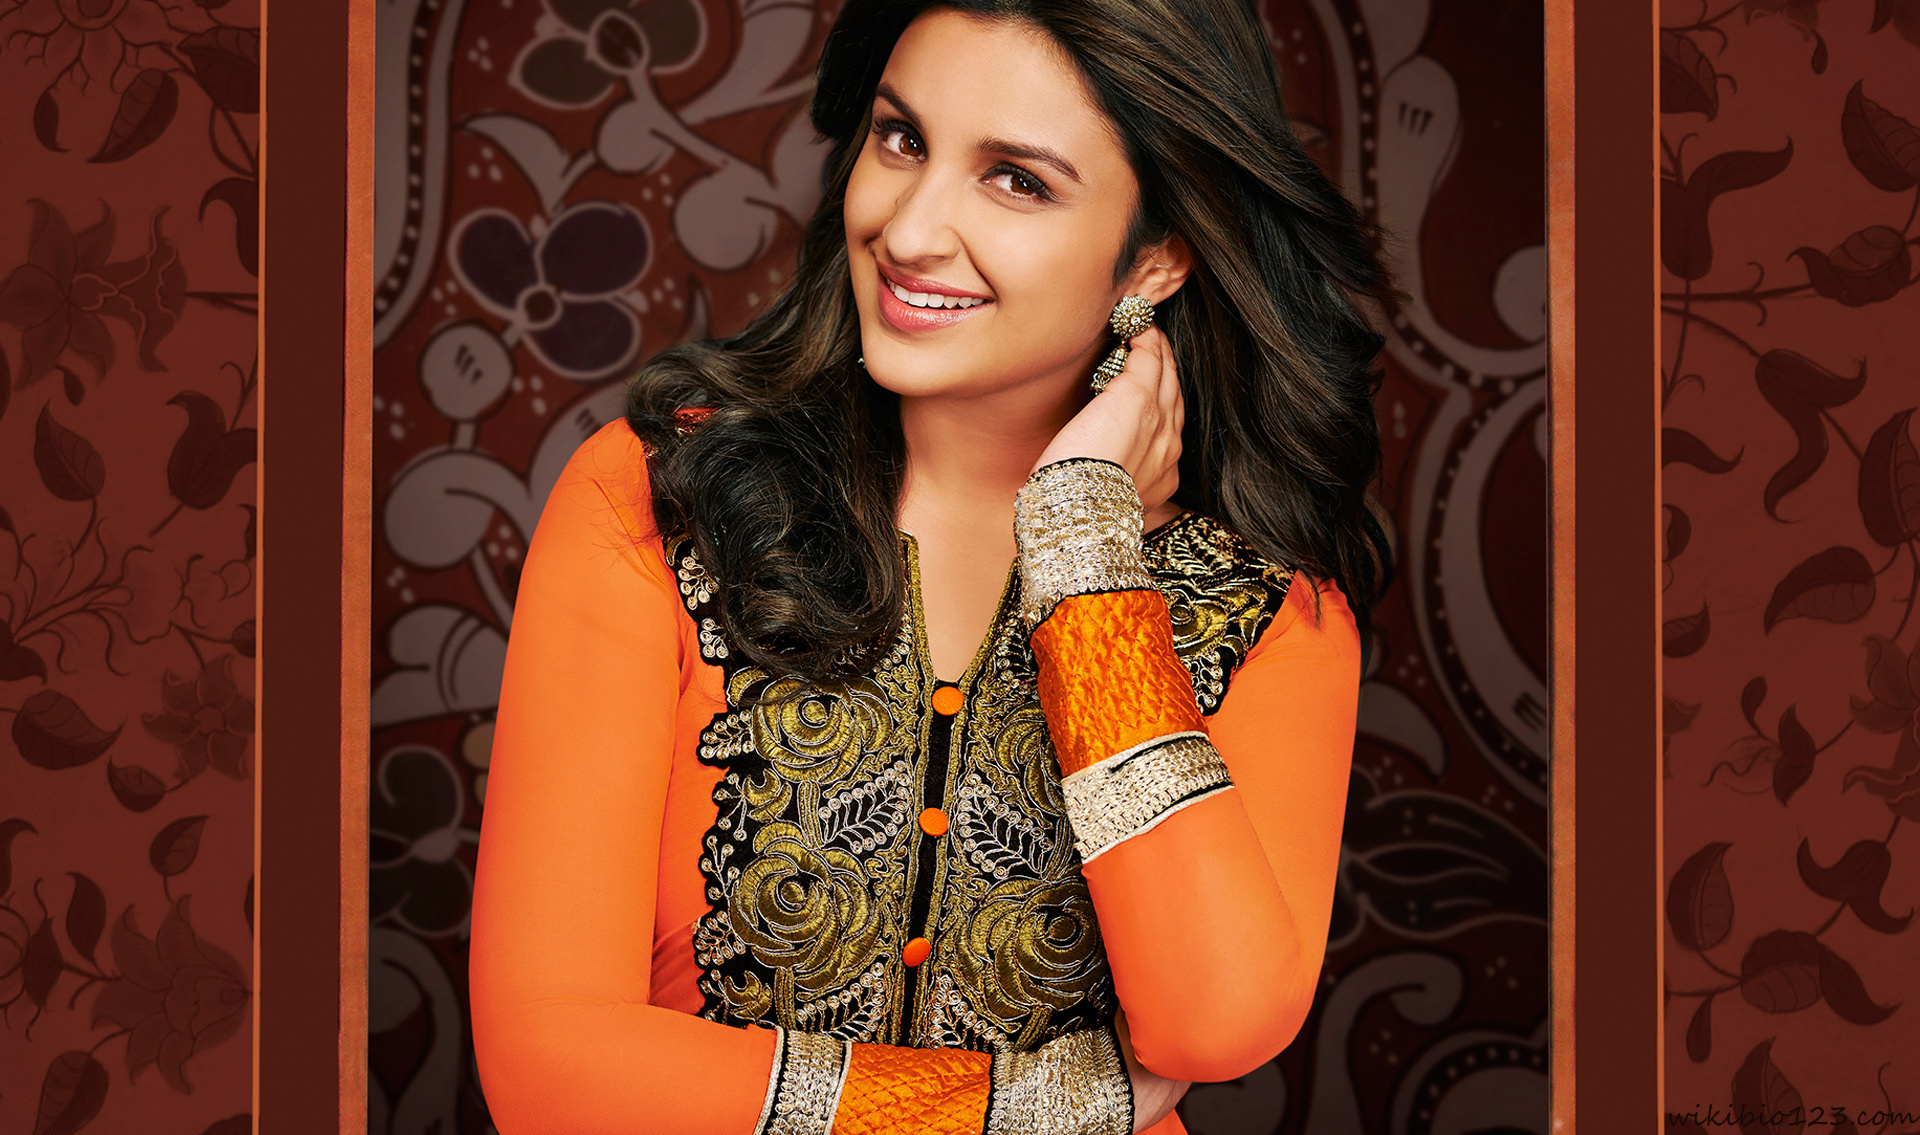 Parineeti Chopra wiki Bio Age Figure size Height HD Images Wallpapers Download